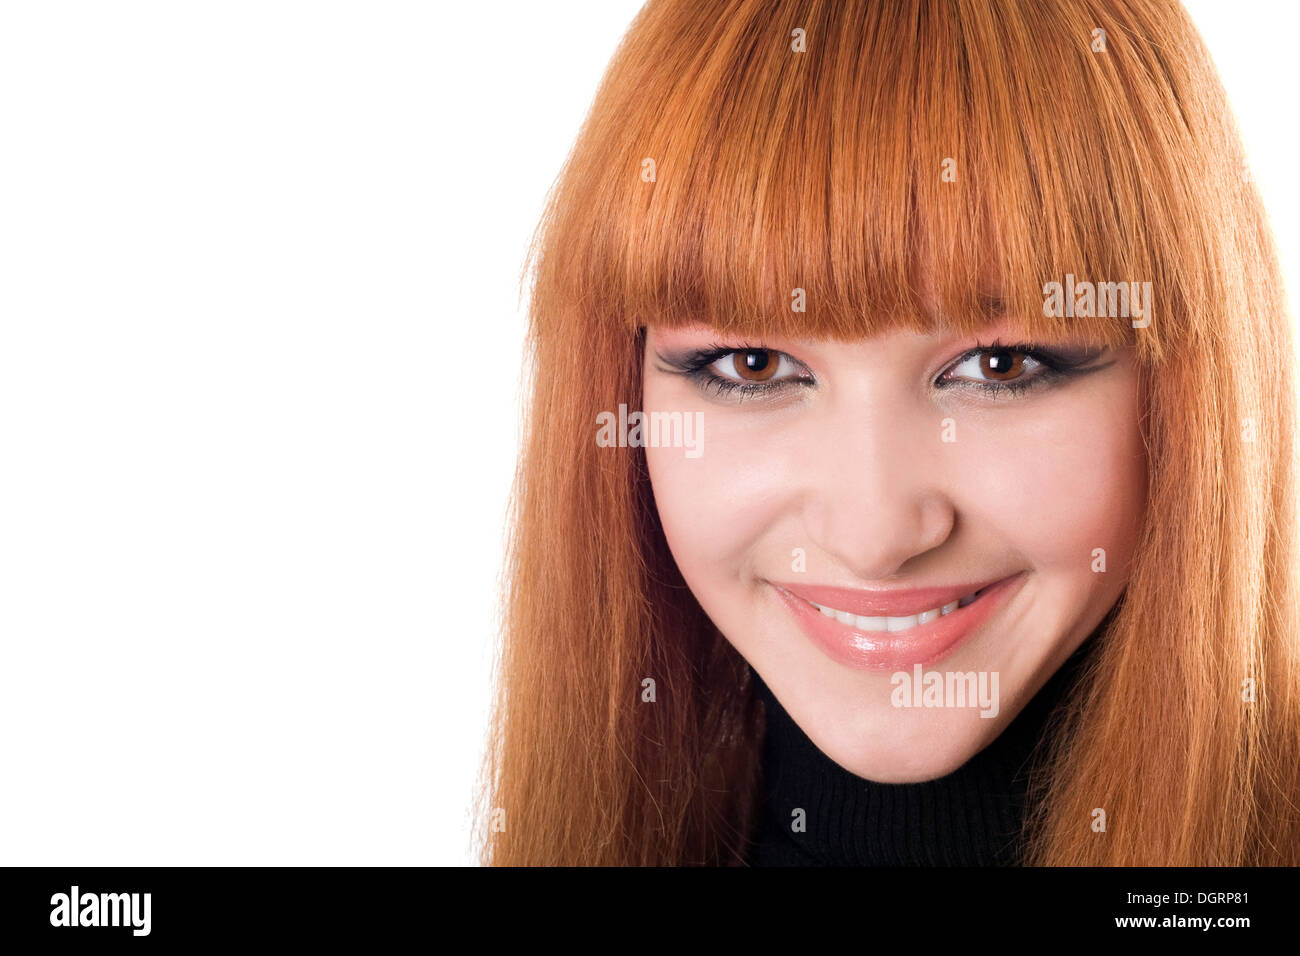 Portrait of the beautiful smiling redheaded woman - Stock Image